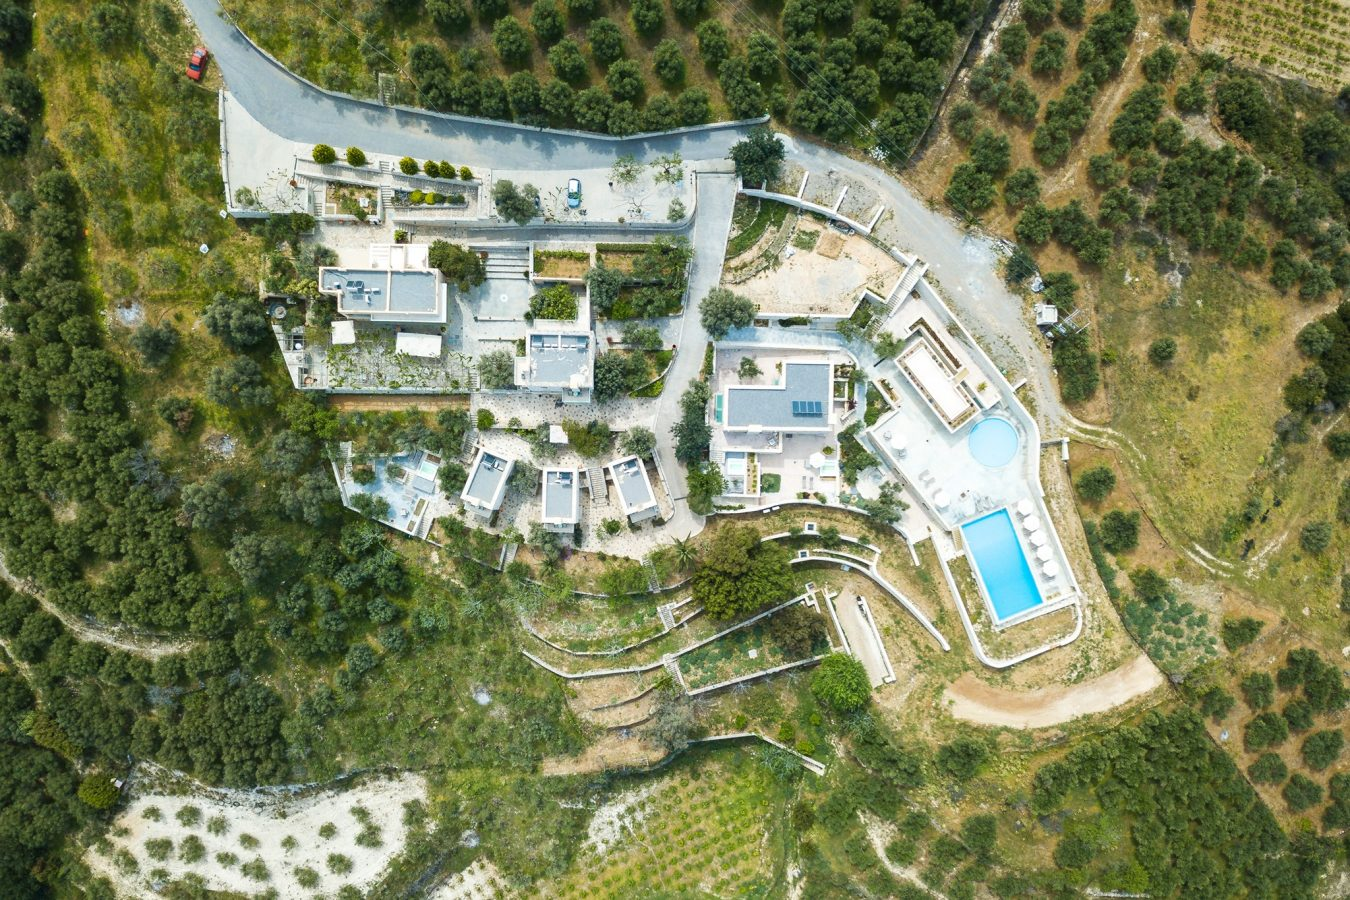 Aerial view of Dalabelos Agrotourism Resort